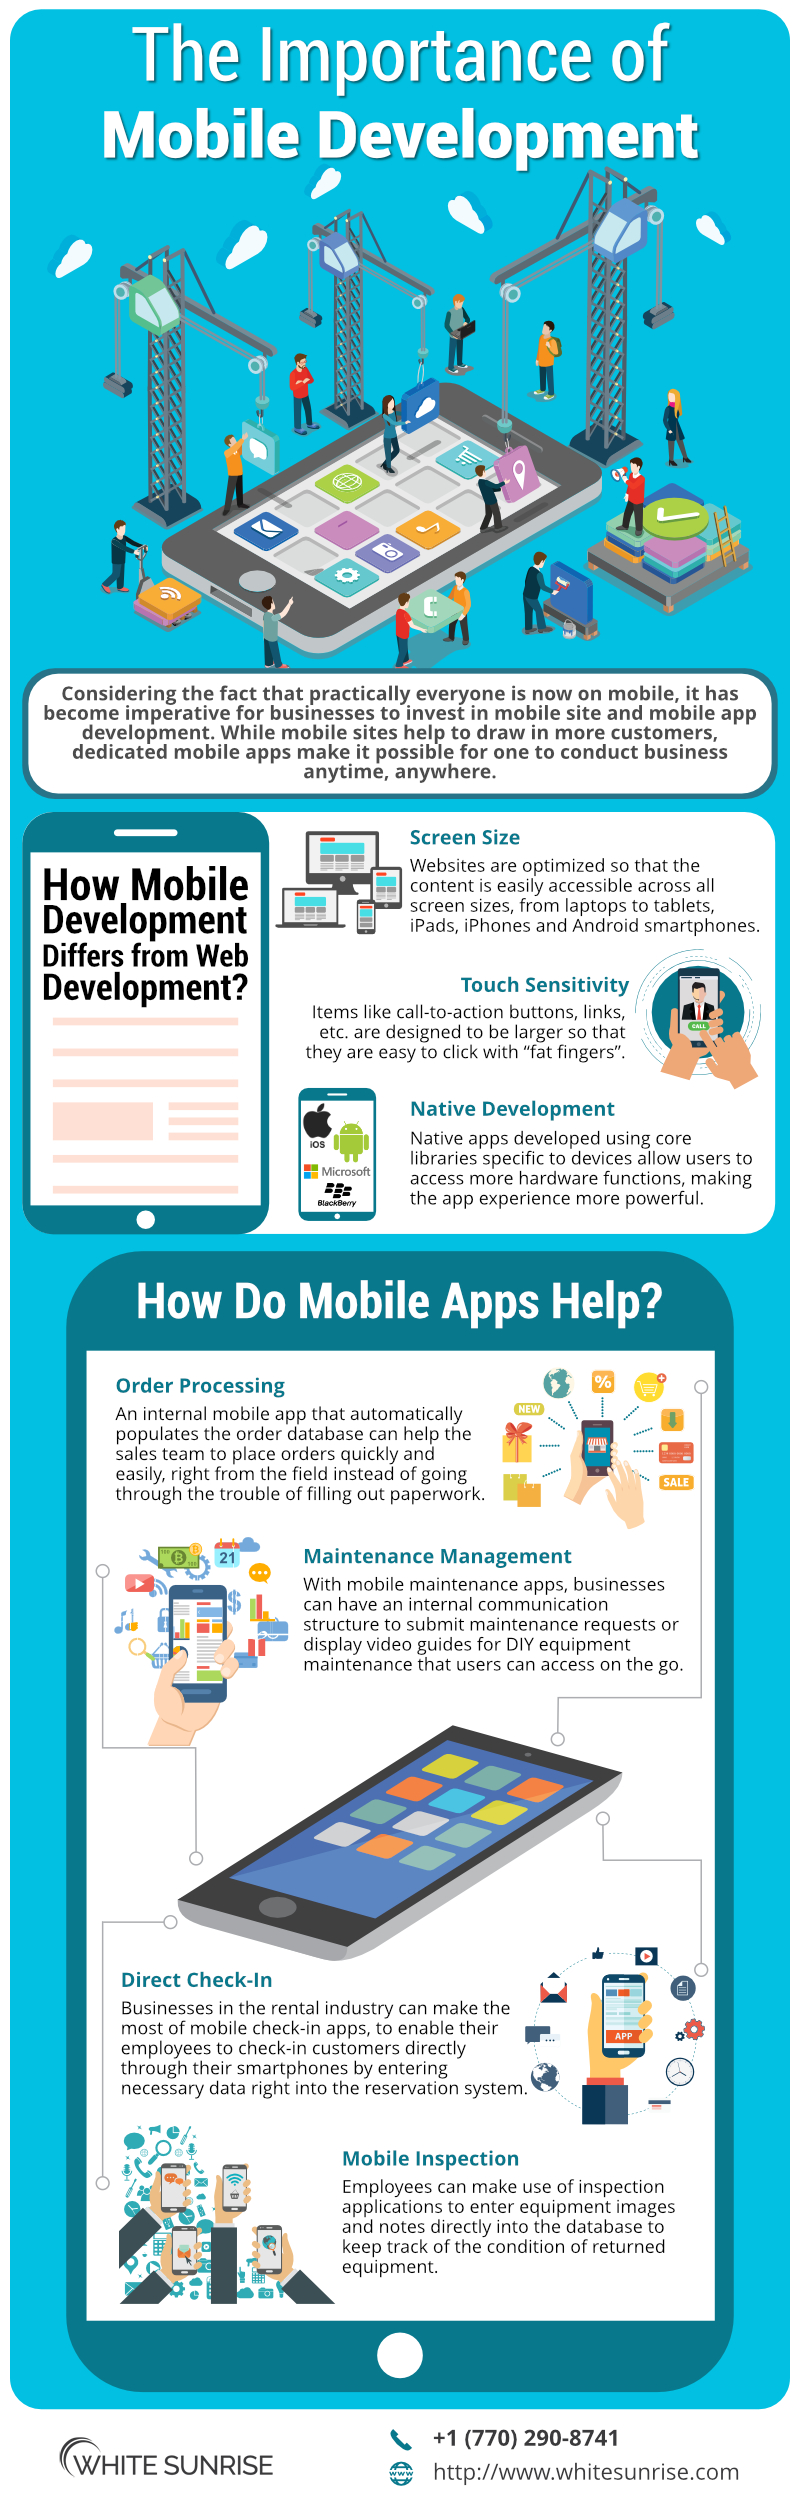 The Importance of Mobile Development